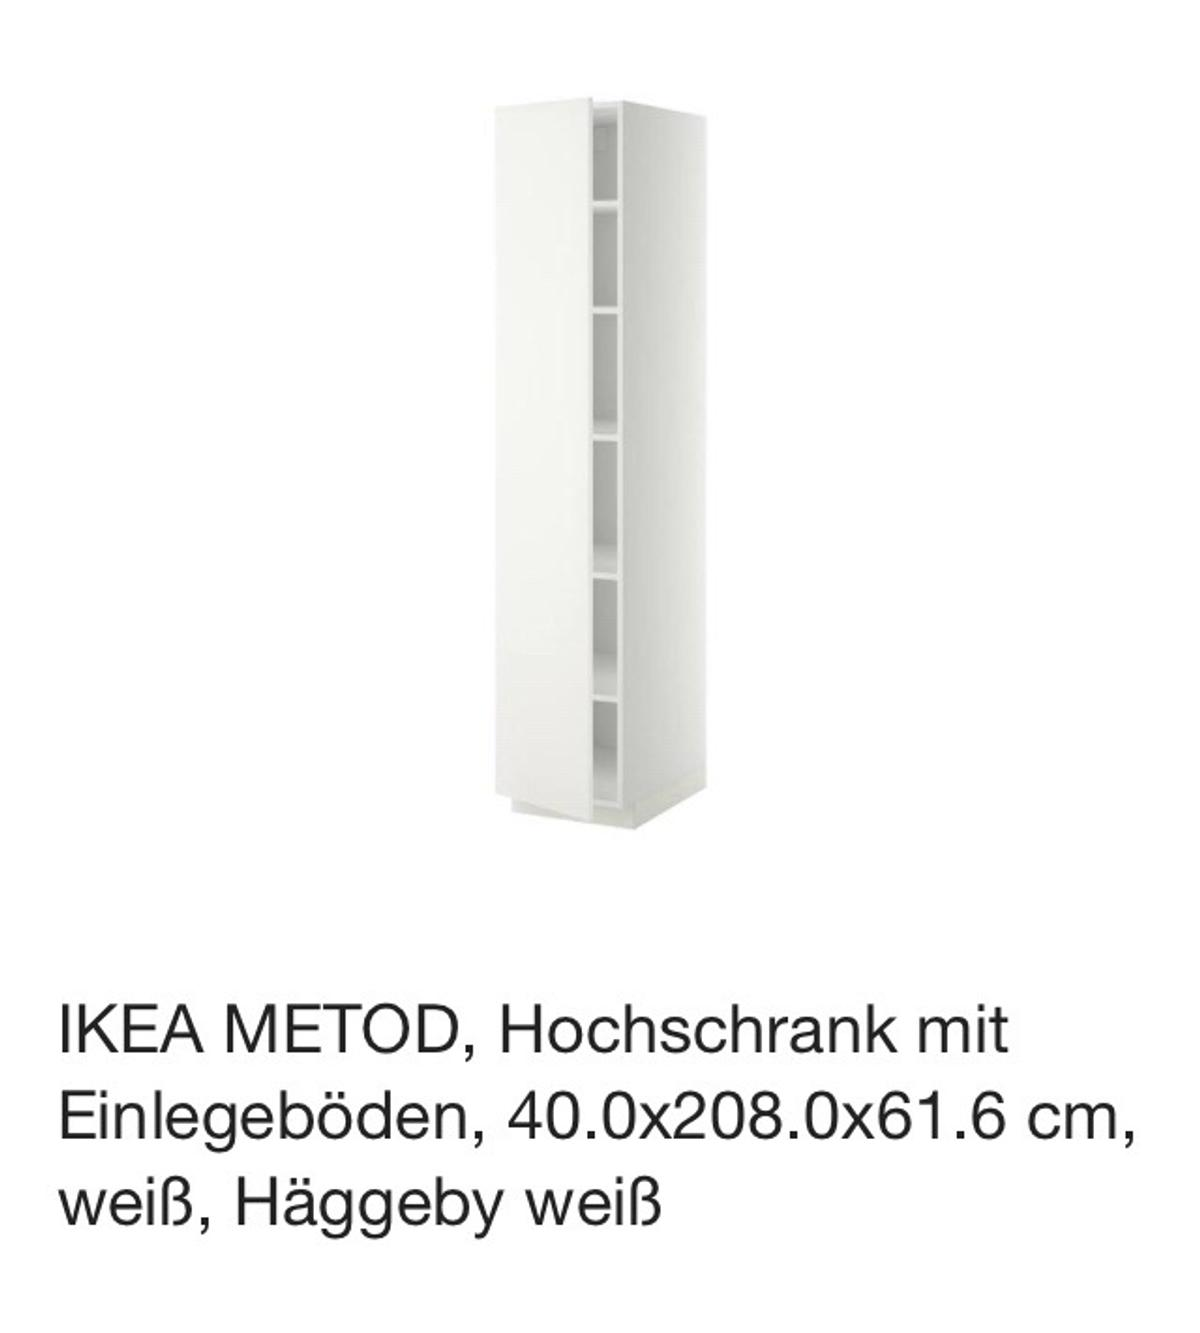 Ikea Metod Hochschrank In 68159 Mannheim For 60 00 For Sale Shpock